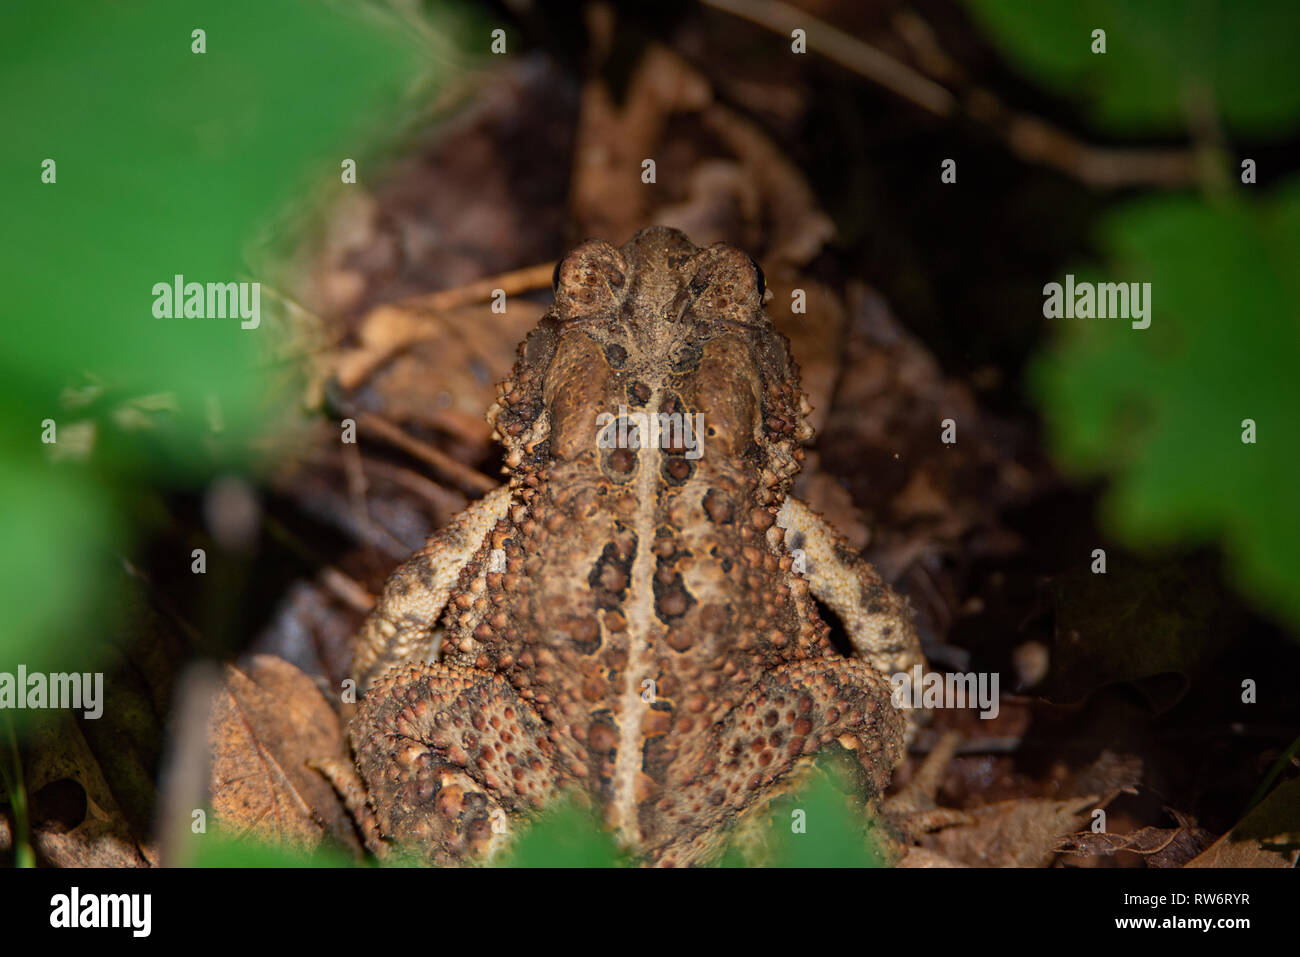 American Toad (Anaxyrus americanus) hidden among the leaves on the forest floor - Stock Image